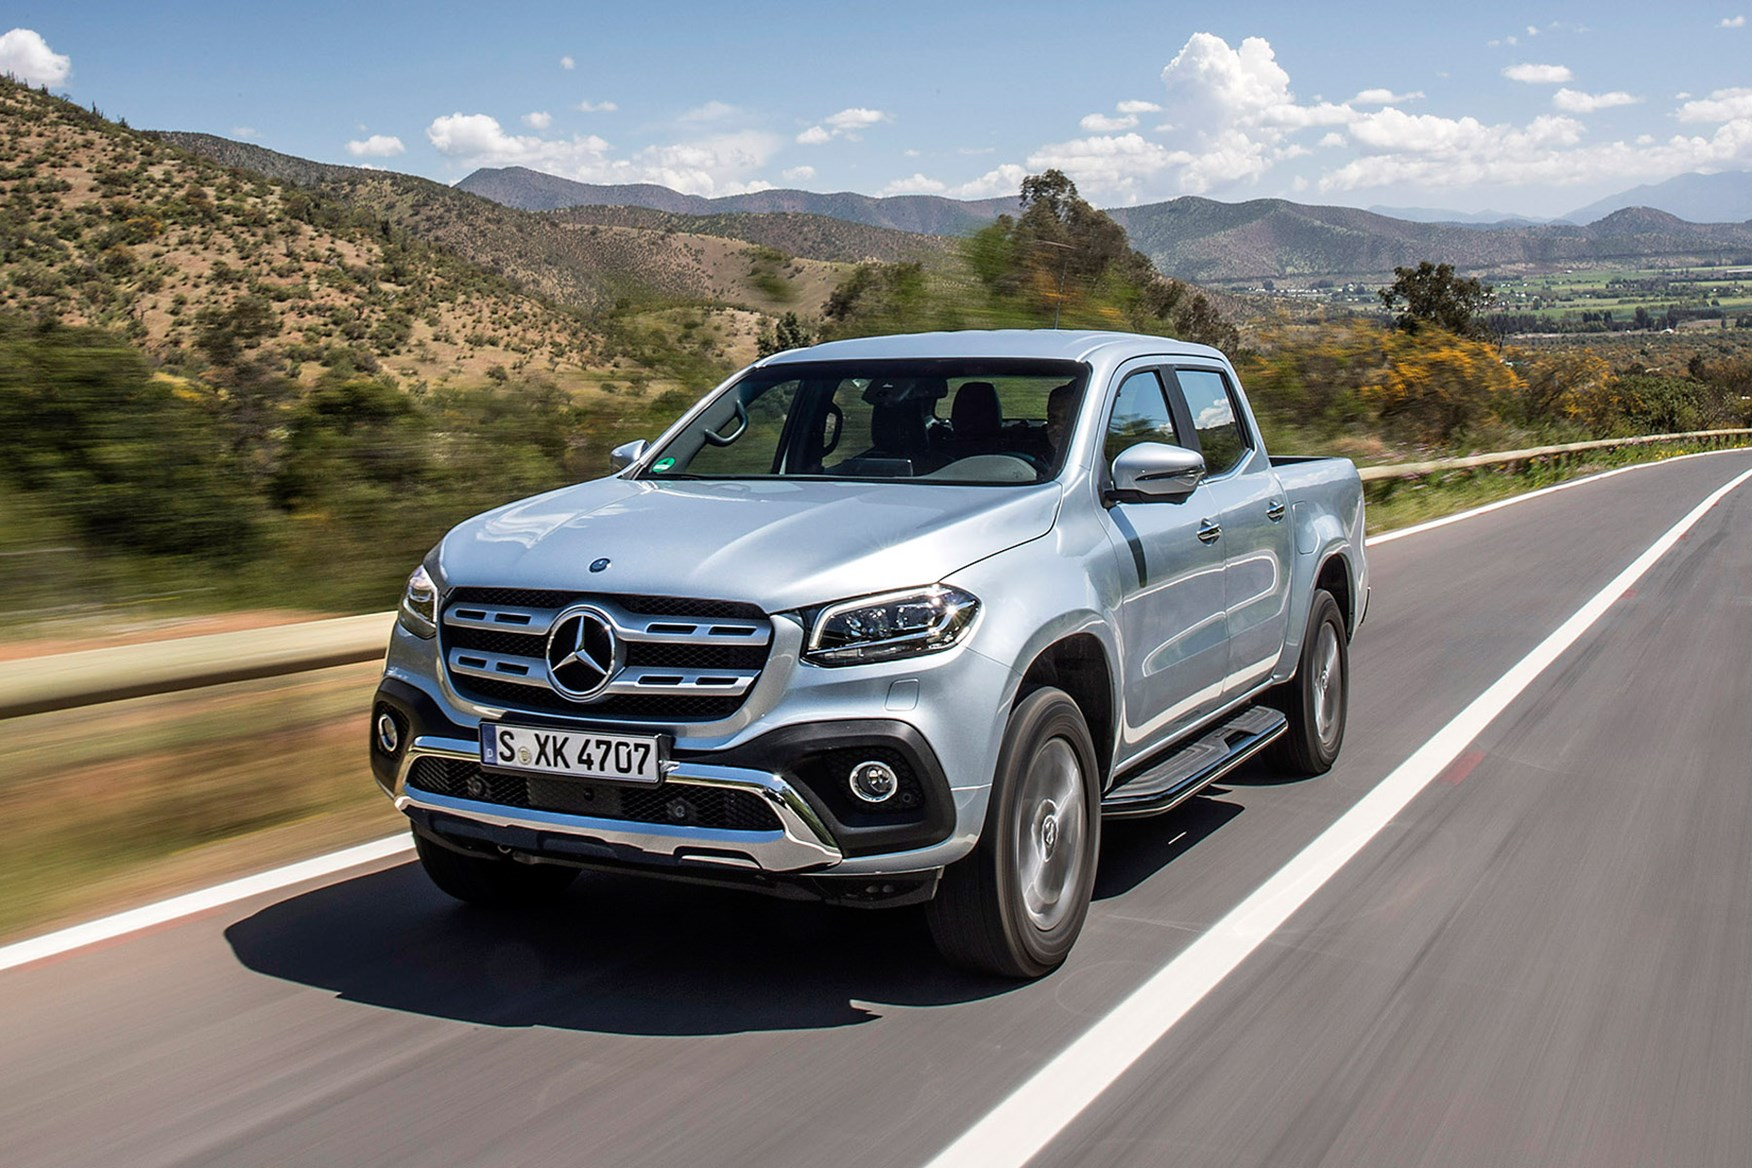 Mercedes-Benz X-Class full review on Parkers Vans - on the road